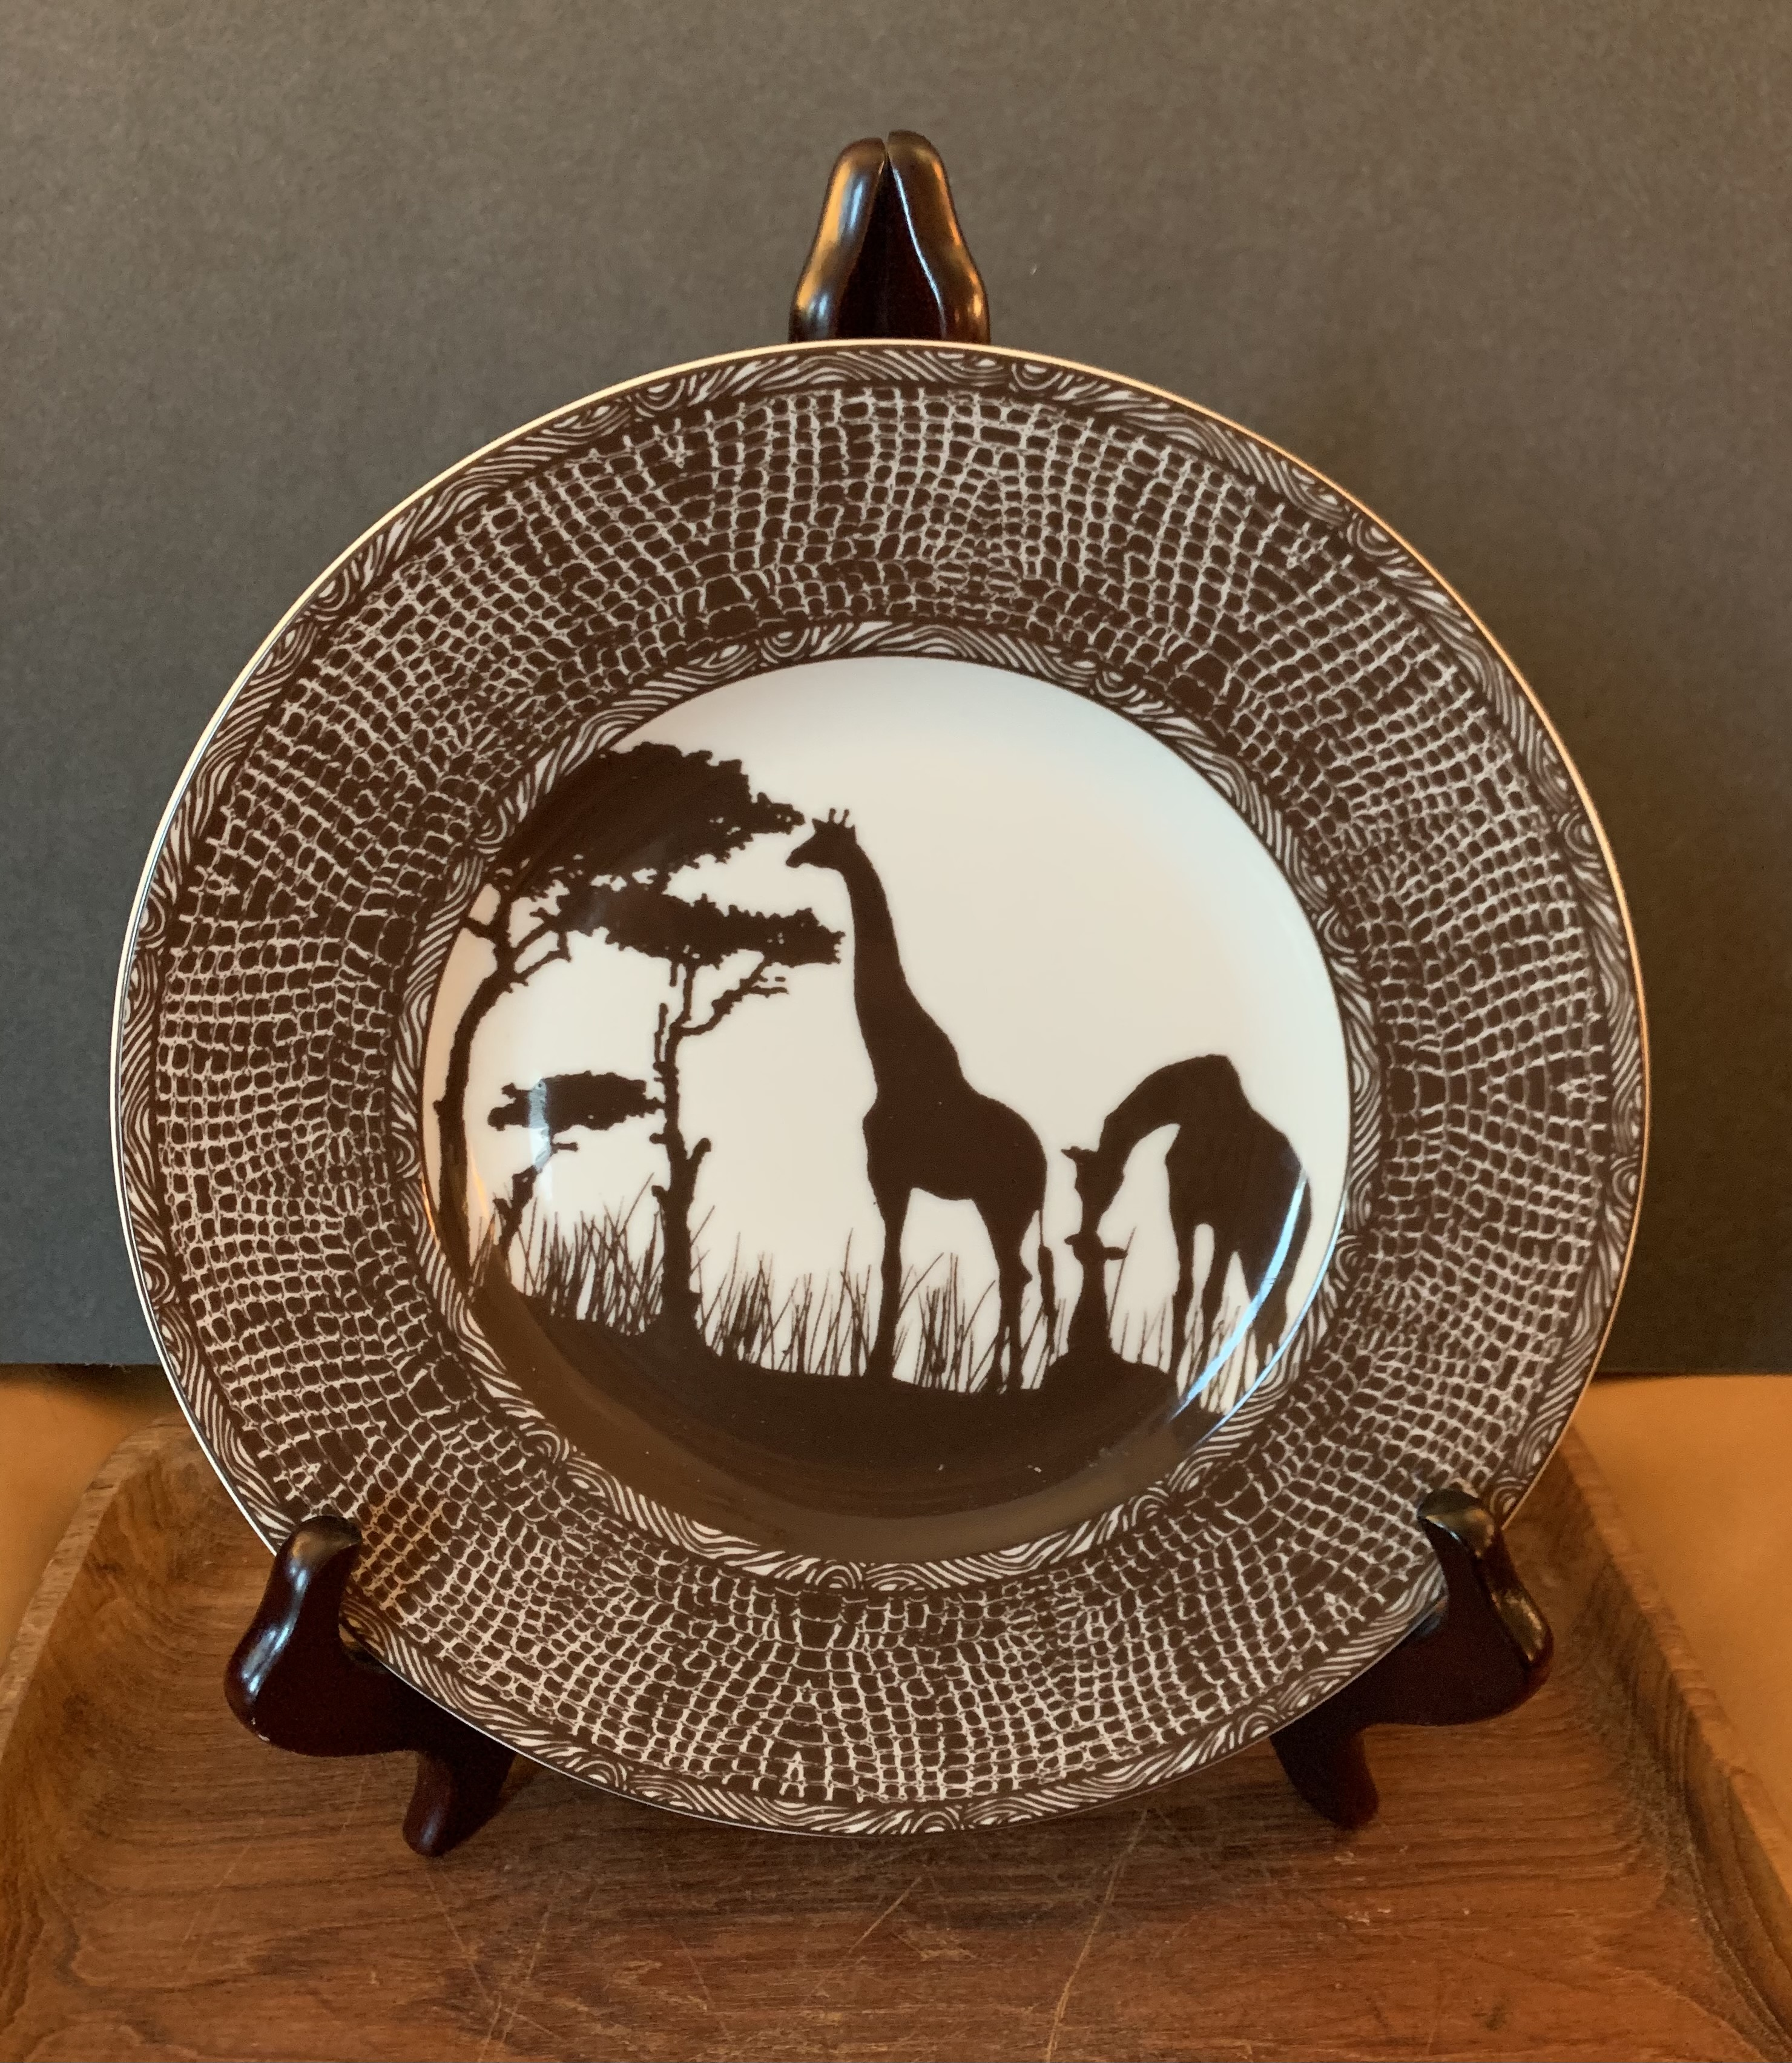 Four Fine China African Plates